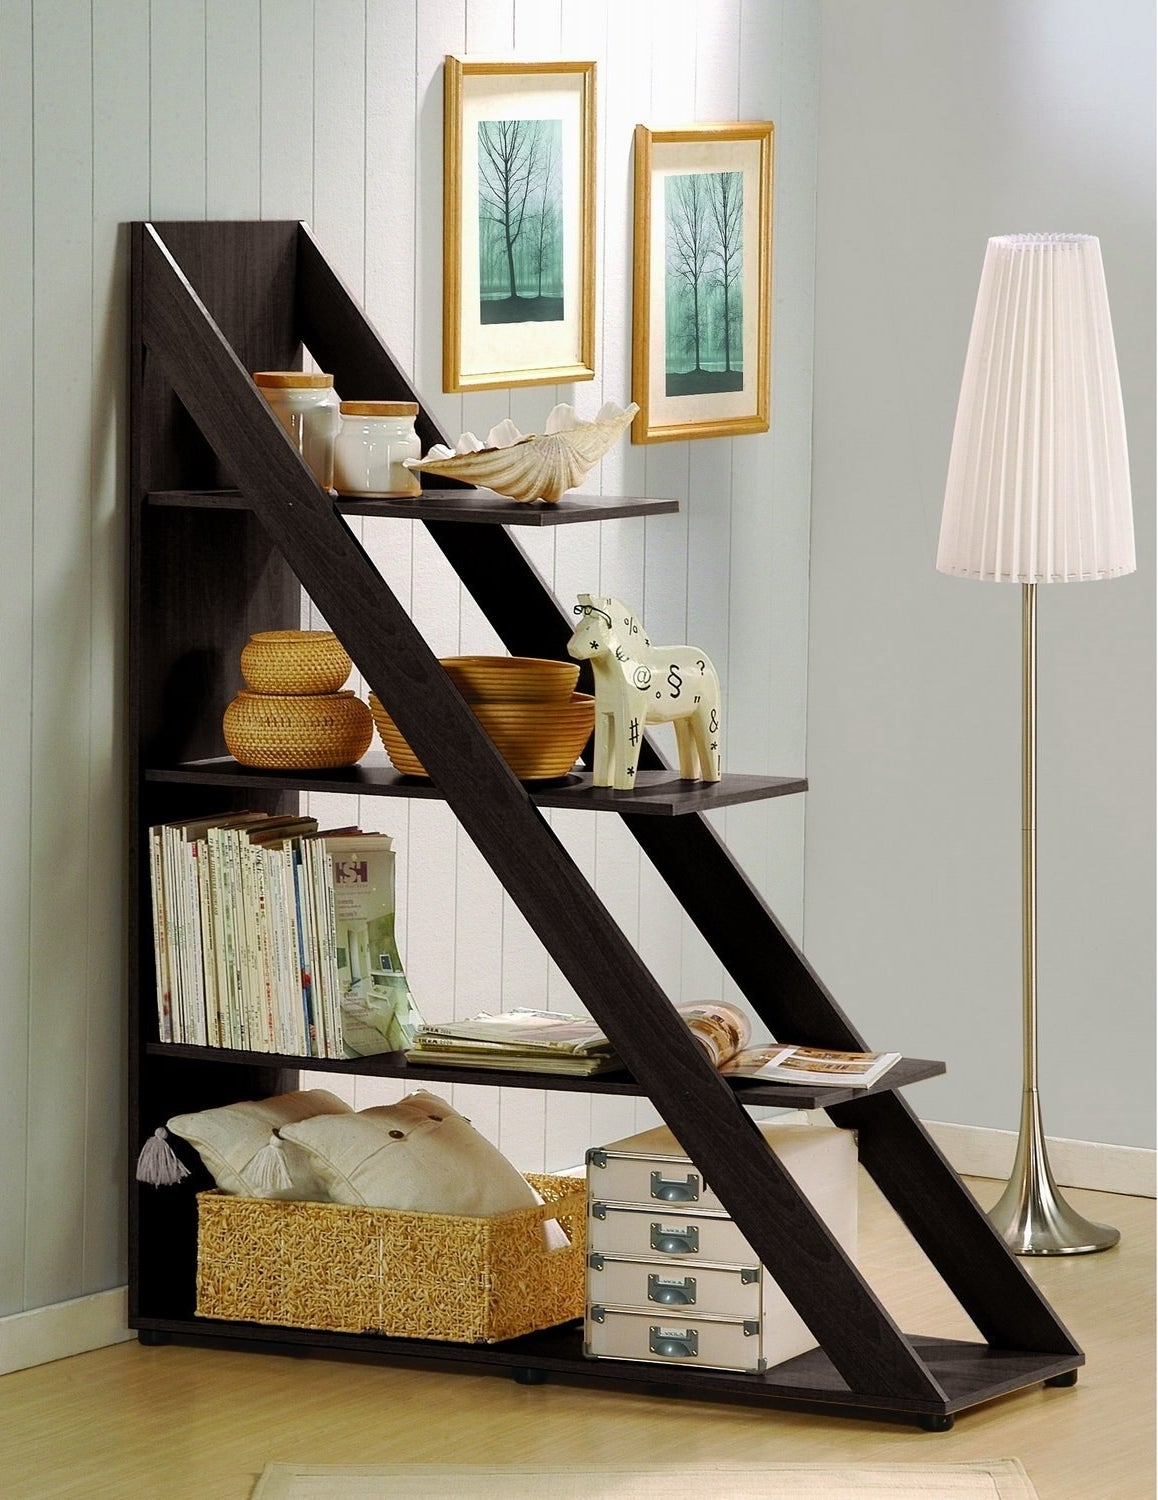 Create a small nook out of a larger room by blocking off a section with a shelf that doubles as a room divider.